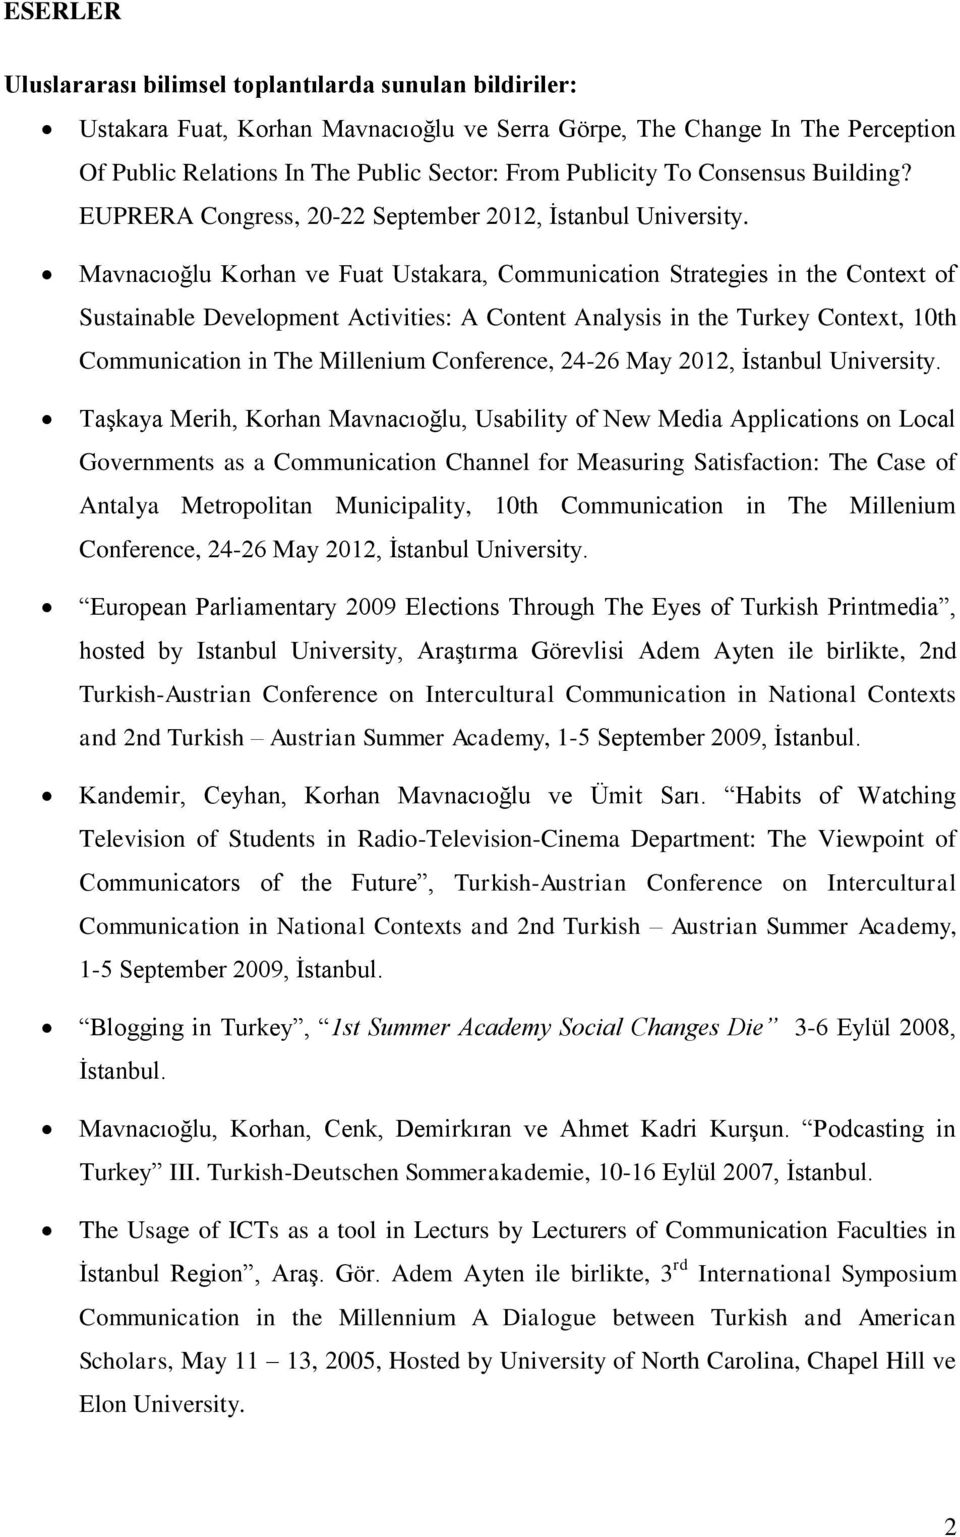 Mavnacıoğlu Korhan ve Fuat Ustakara, Communication Strategies in the Context of Sustainable Development Activities: A Content Analysis in the Turkey Context, 10th Communication in The Millenium